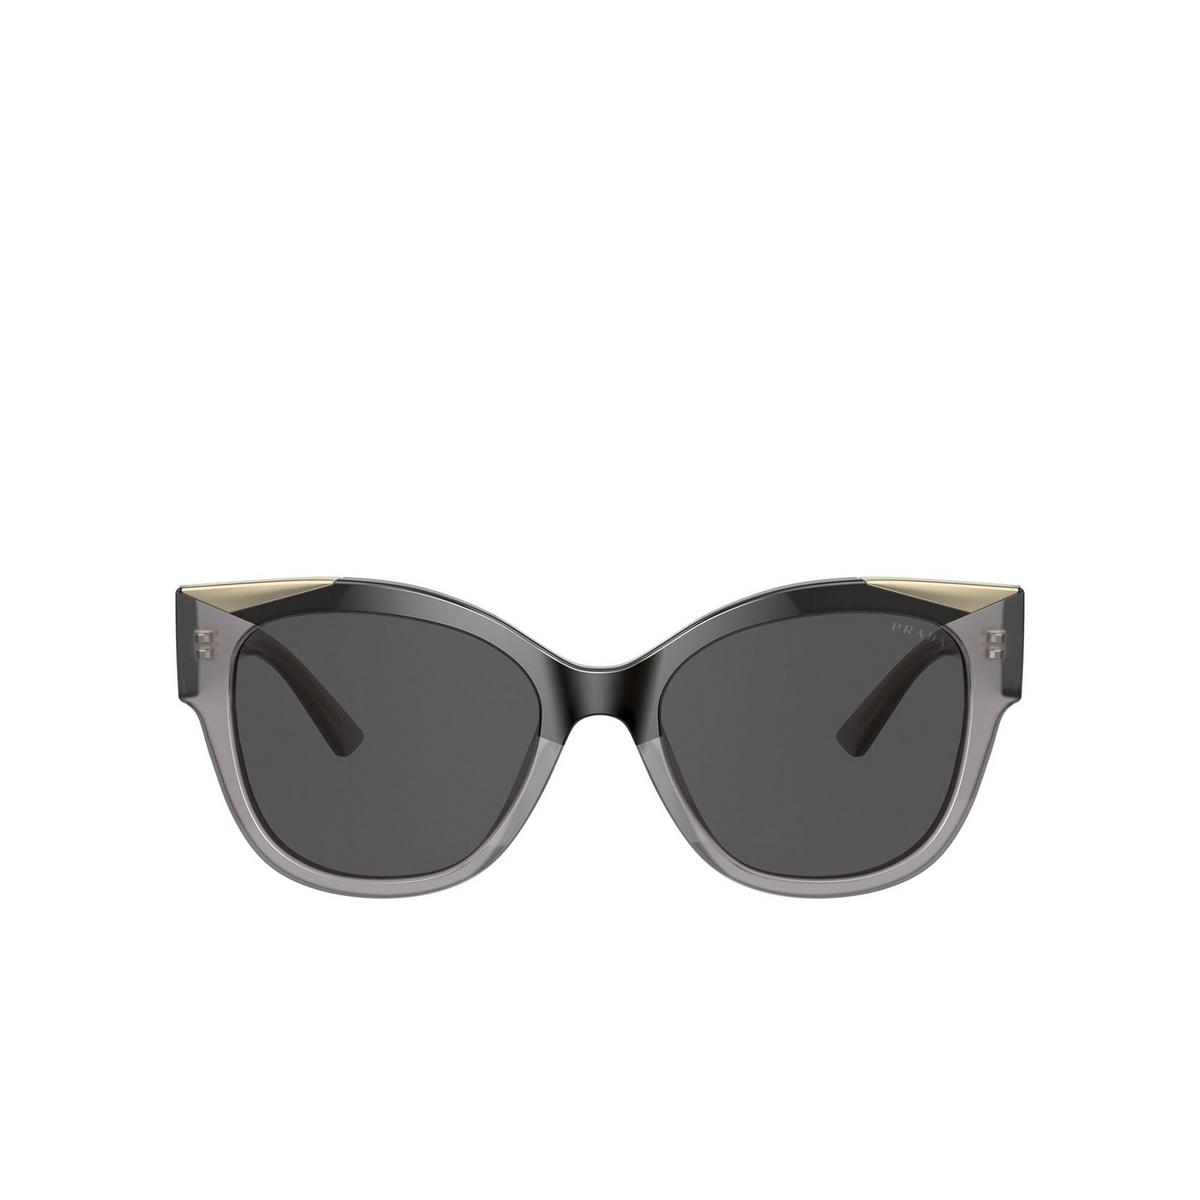 Prada® Butterfly Sunglasses: PR 02WS color Black / Opal Grey 03M5S0 - front view.